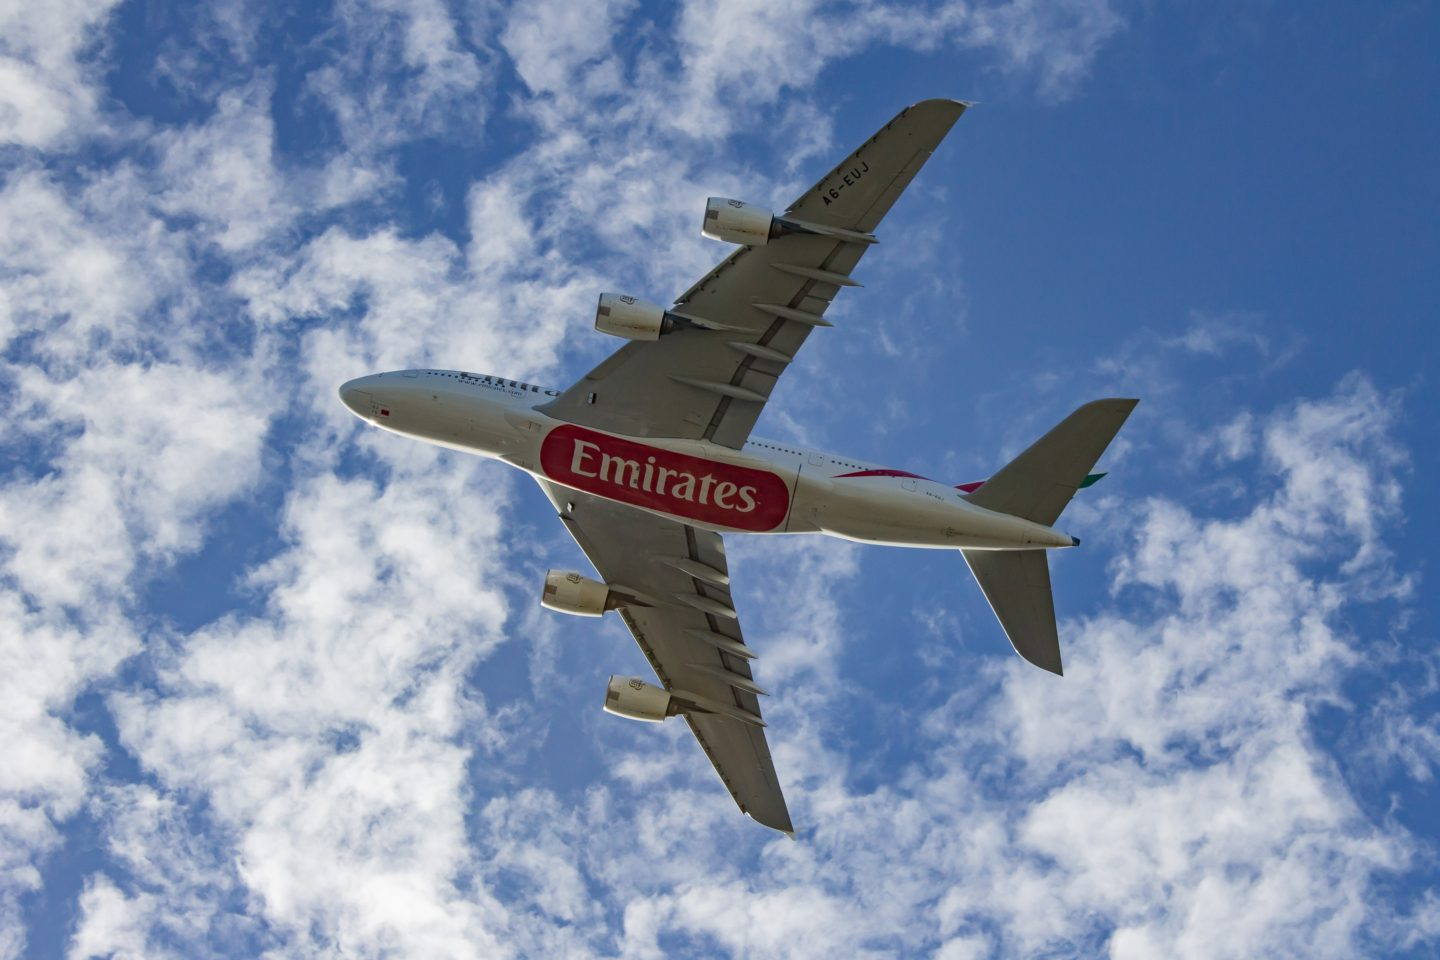 Emirates plane flying in the sky